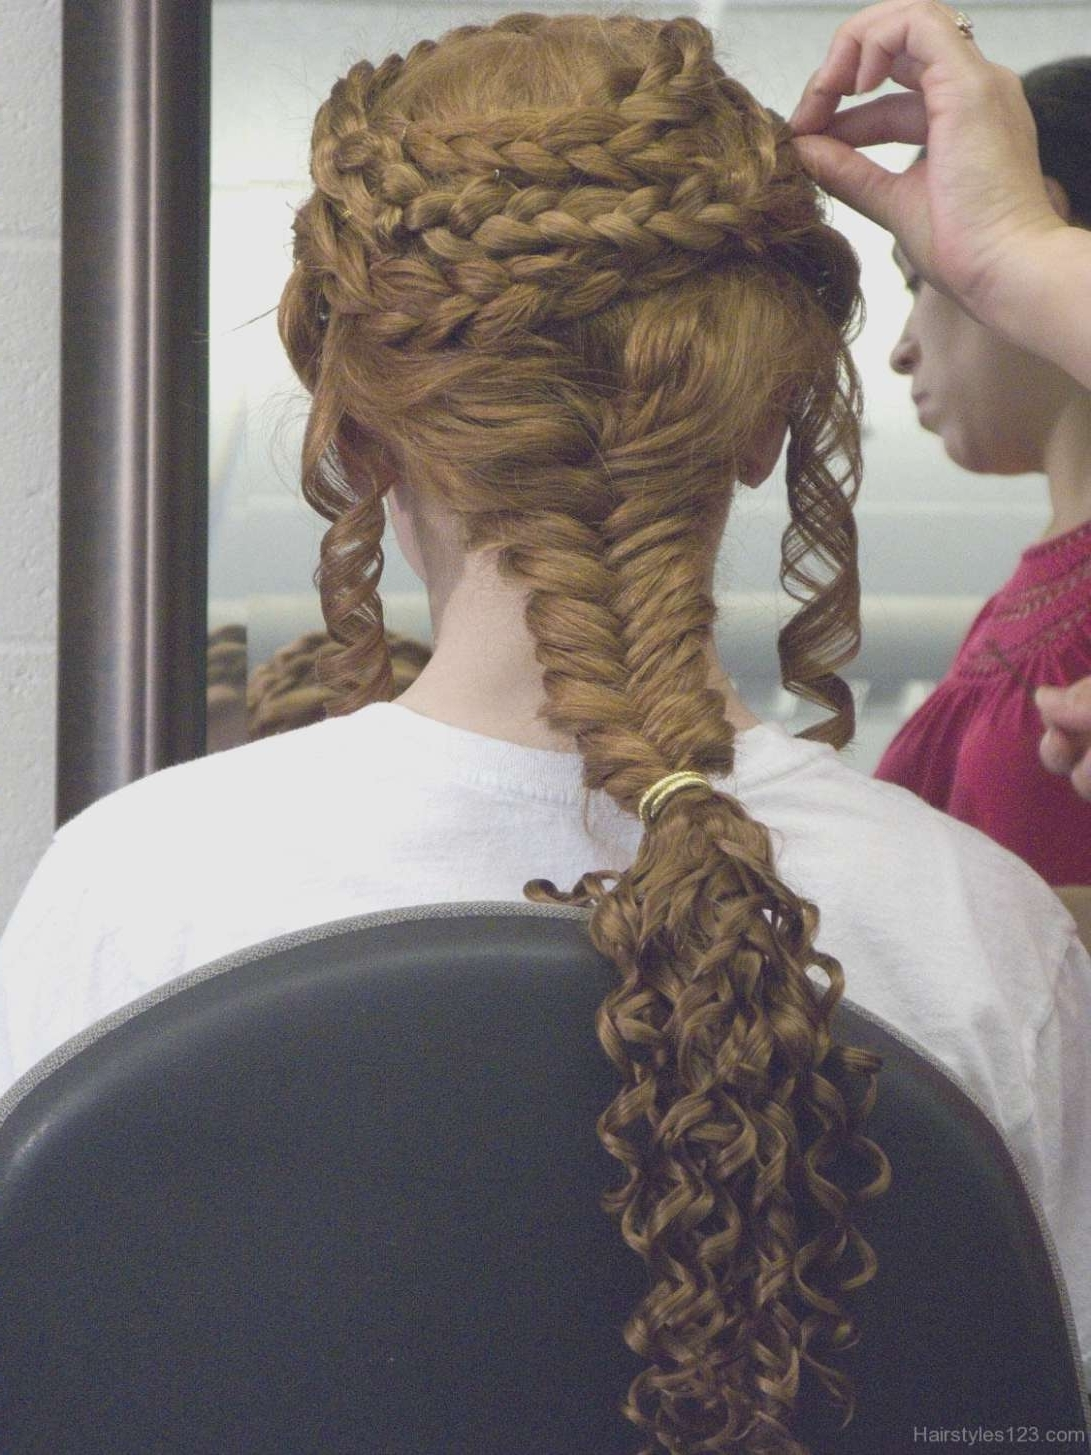 Victorian Braid Hairstyles Victorian Hairstyles Page 2 – Gulfsource Within Preferred Braided Victorian Hairstyles (View 15 of 15)